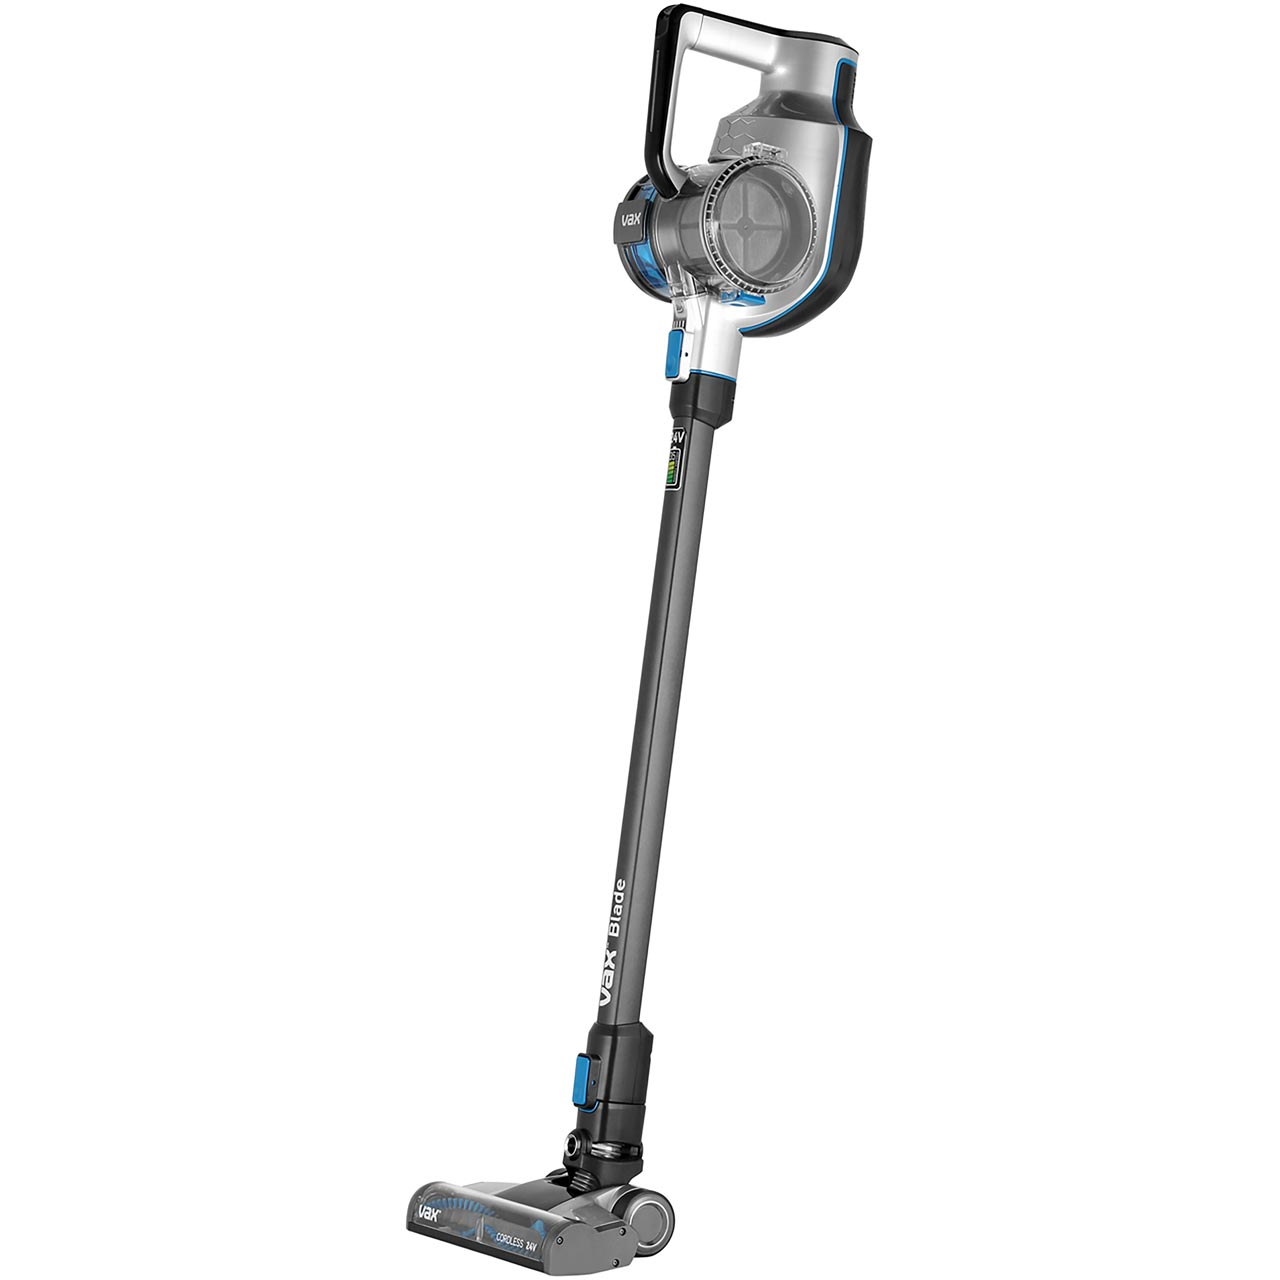 Vax Blade 24v Tbt3v1b2 Cordless Vacuum Cleaner With Up To 35 Minutes Run Time Tbt3v1b2_si